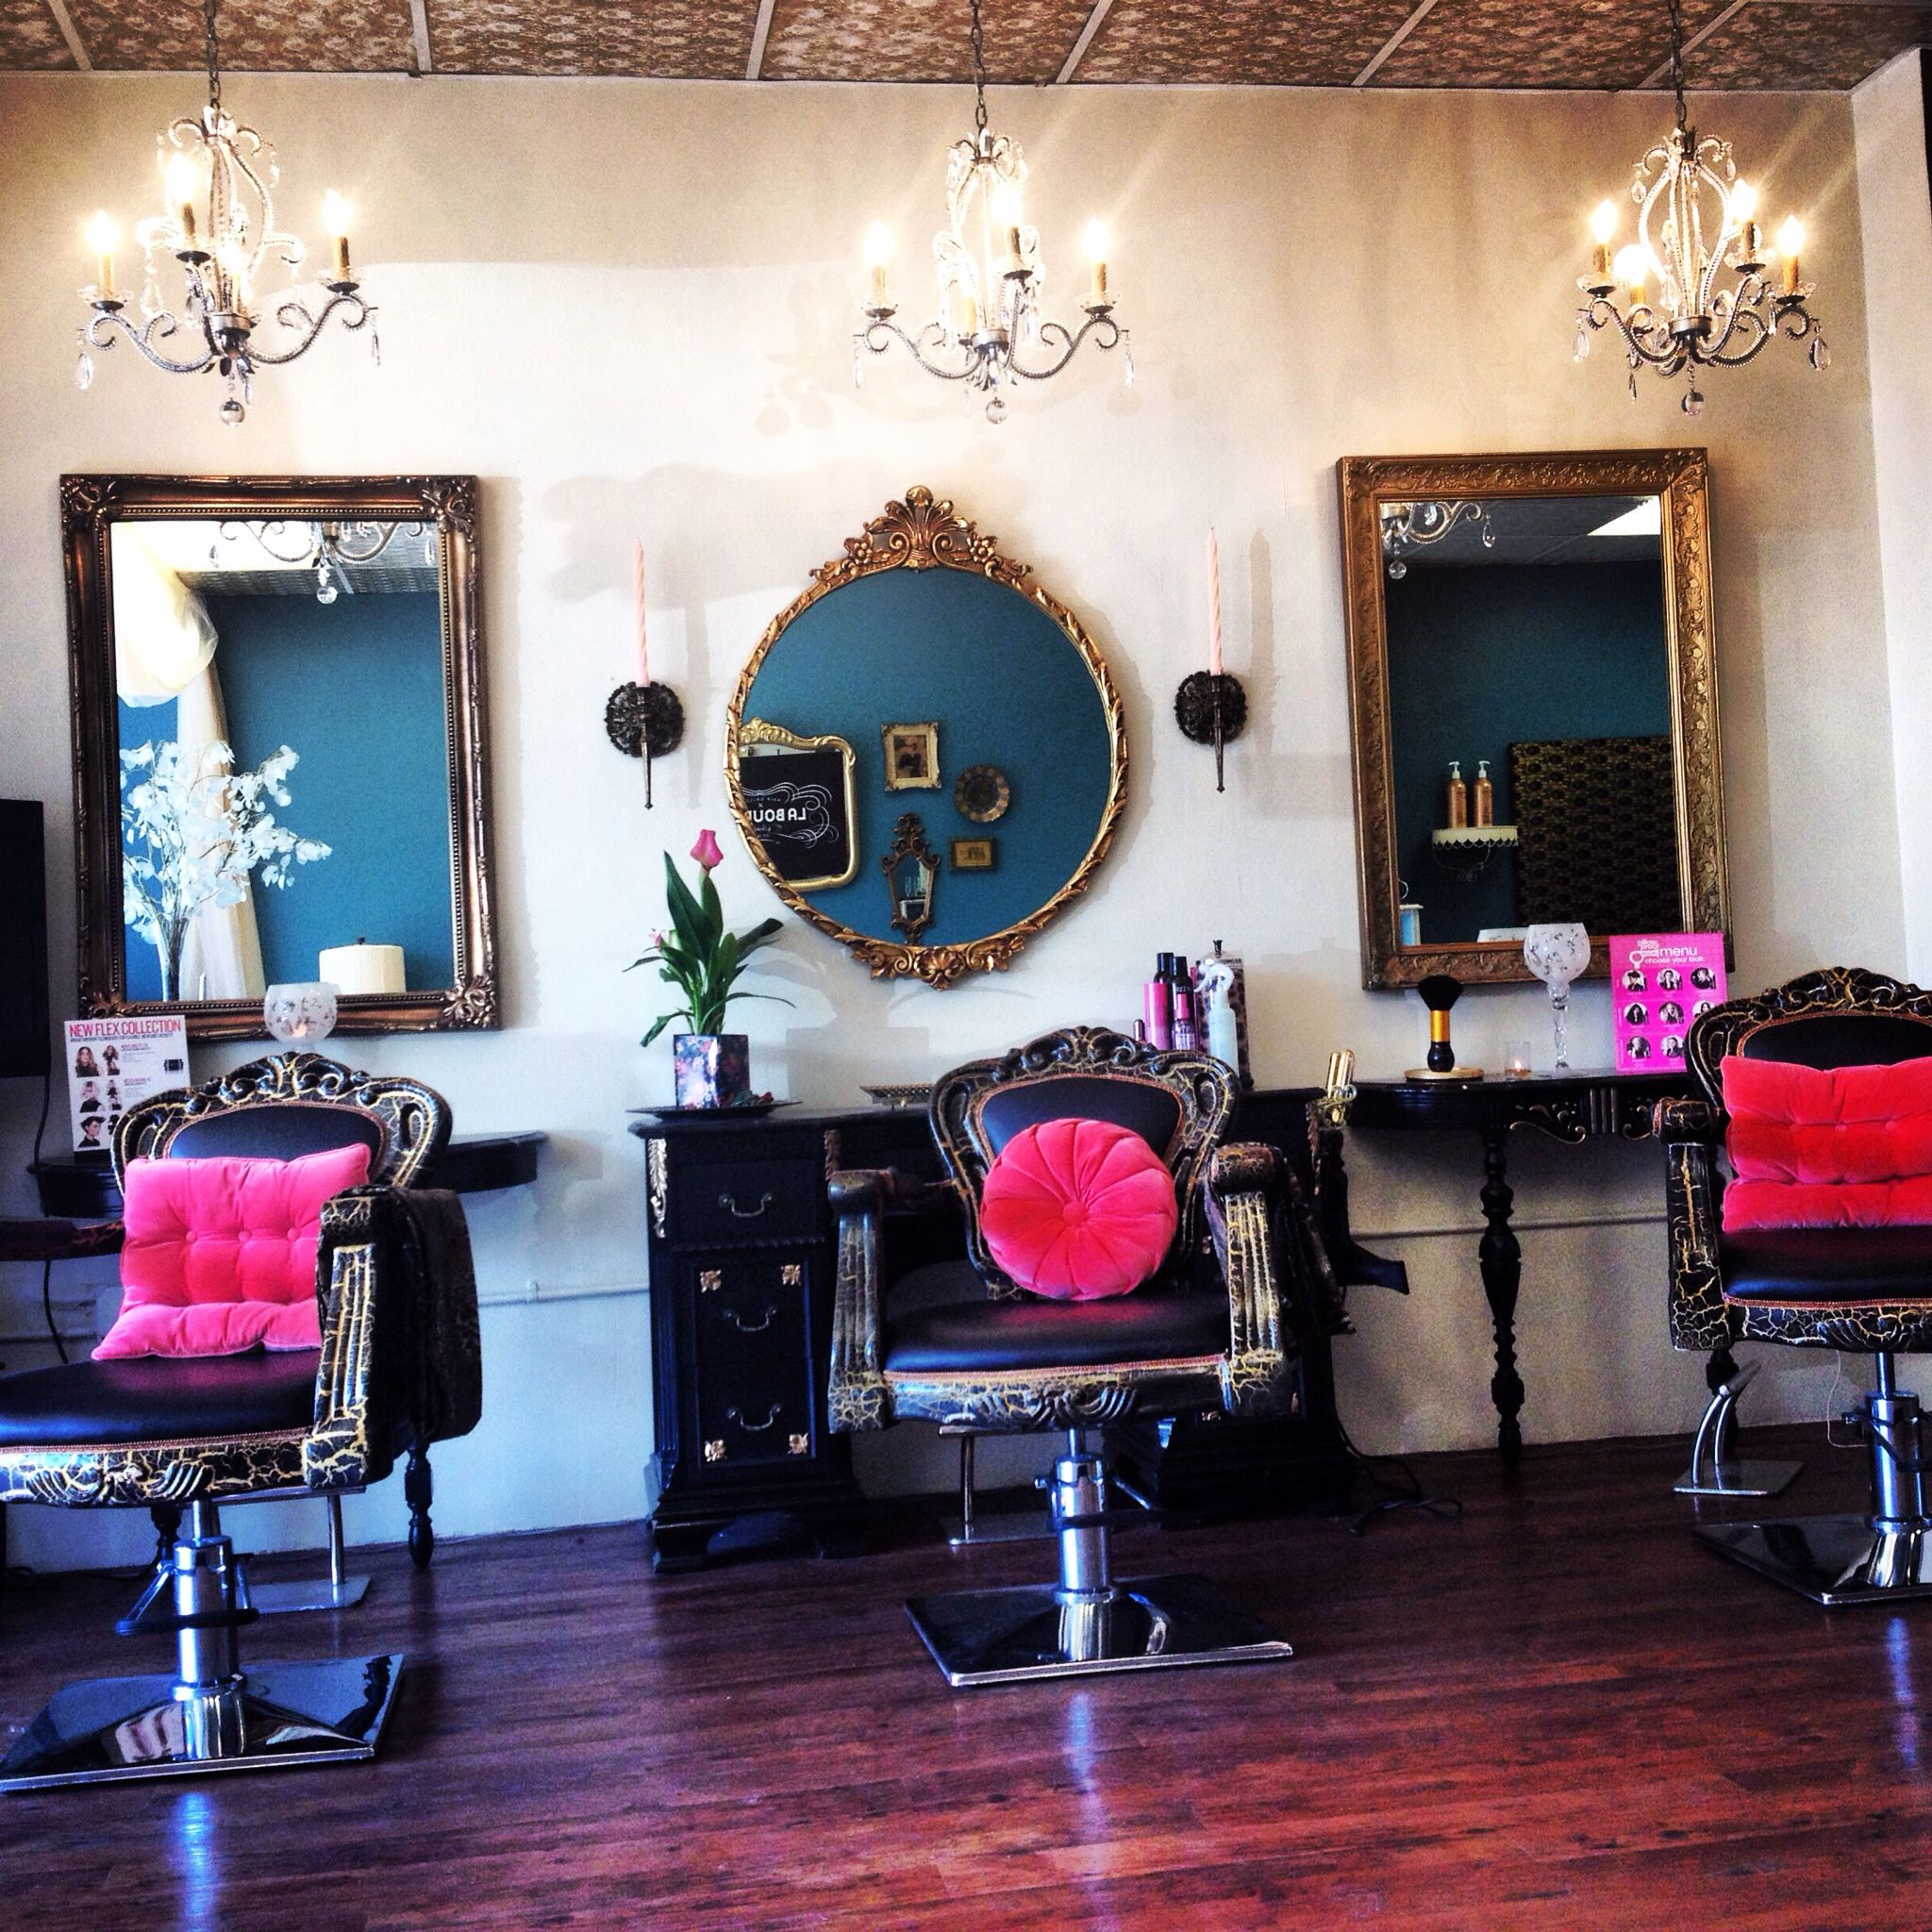 Love the style! It gives this salon personality! Each